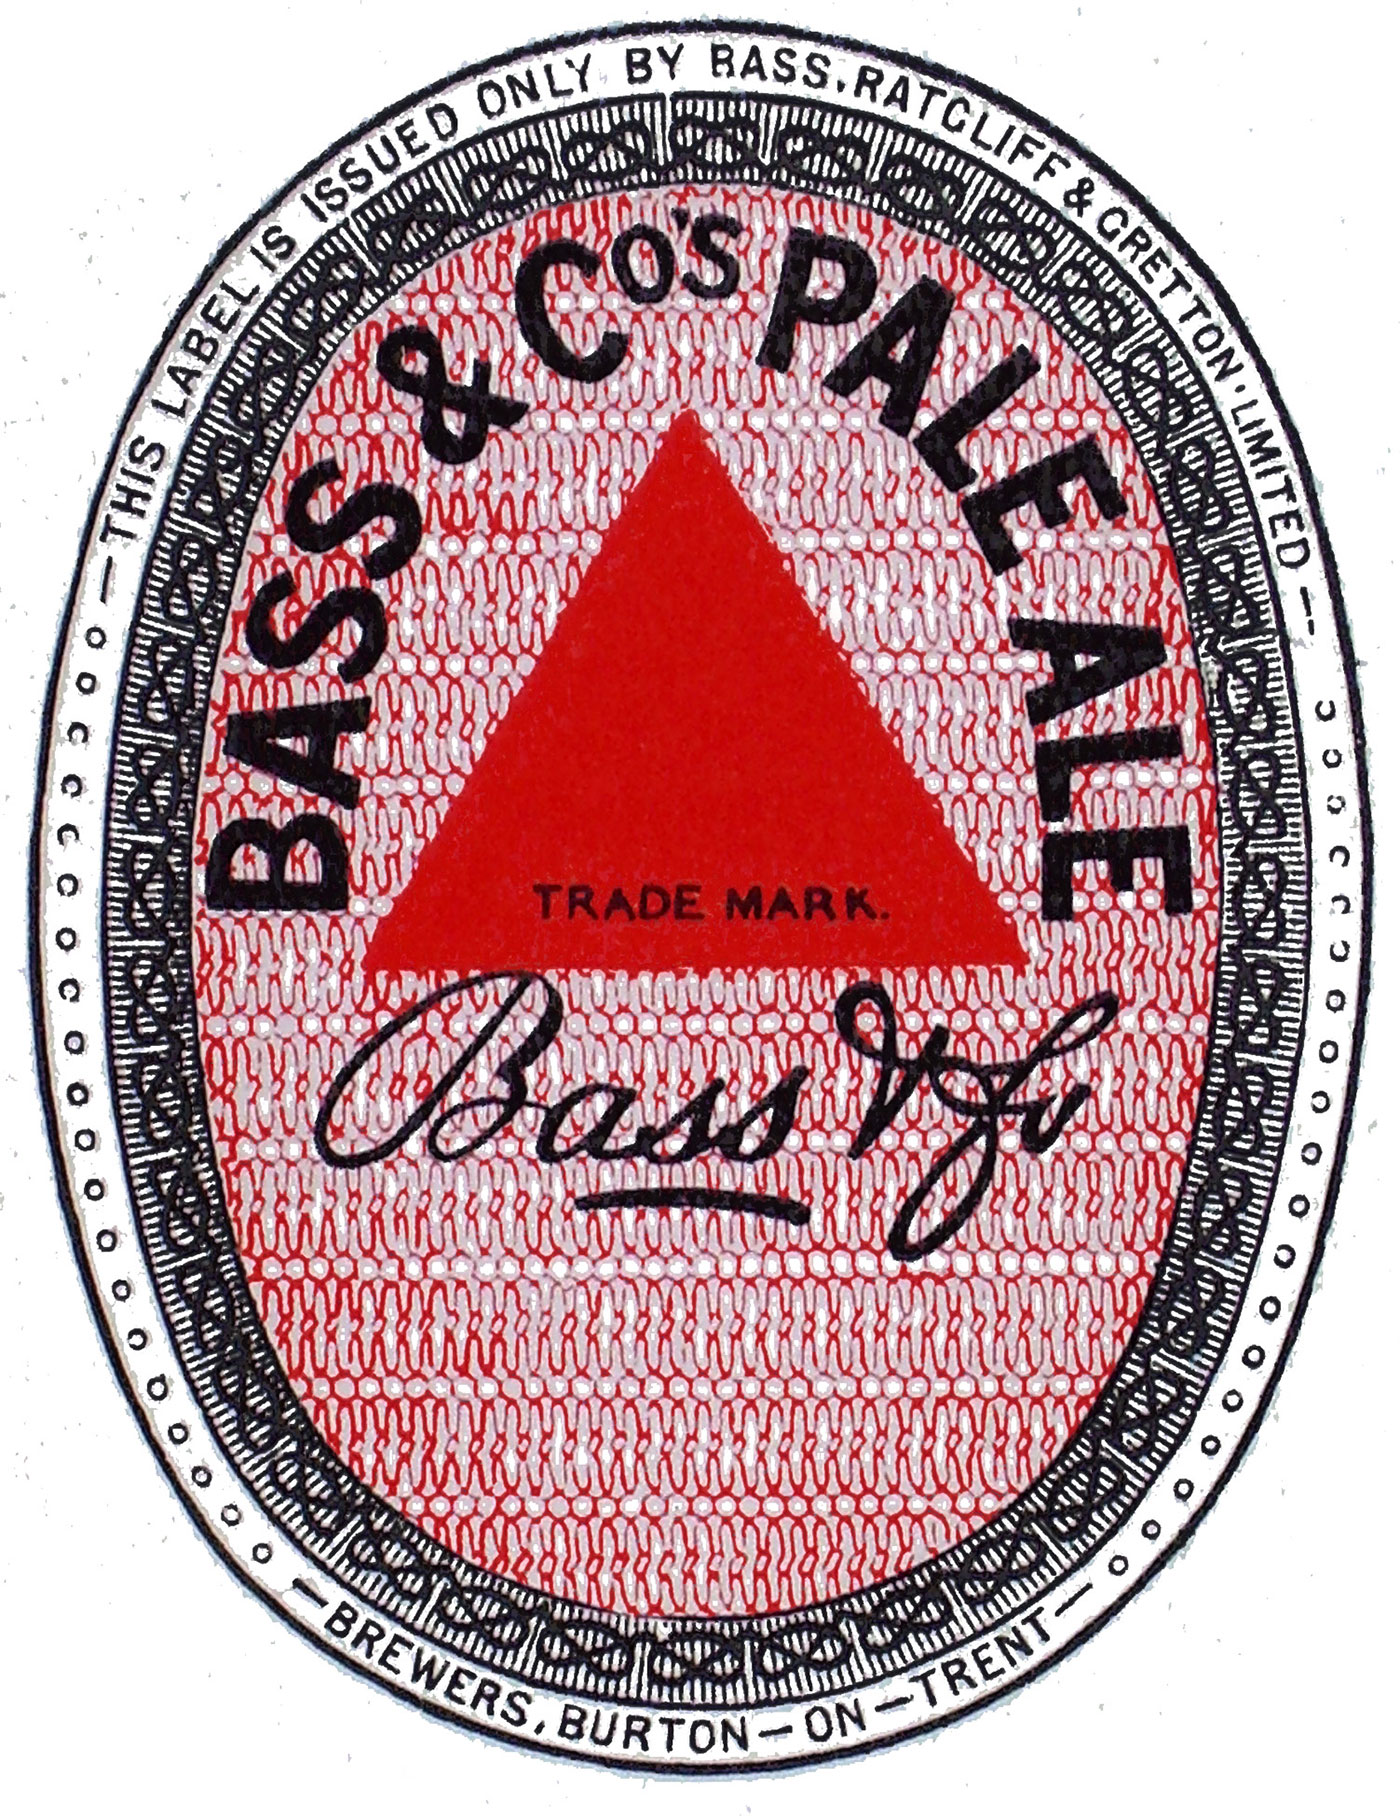 Bass pale ale vintage label